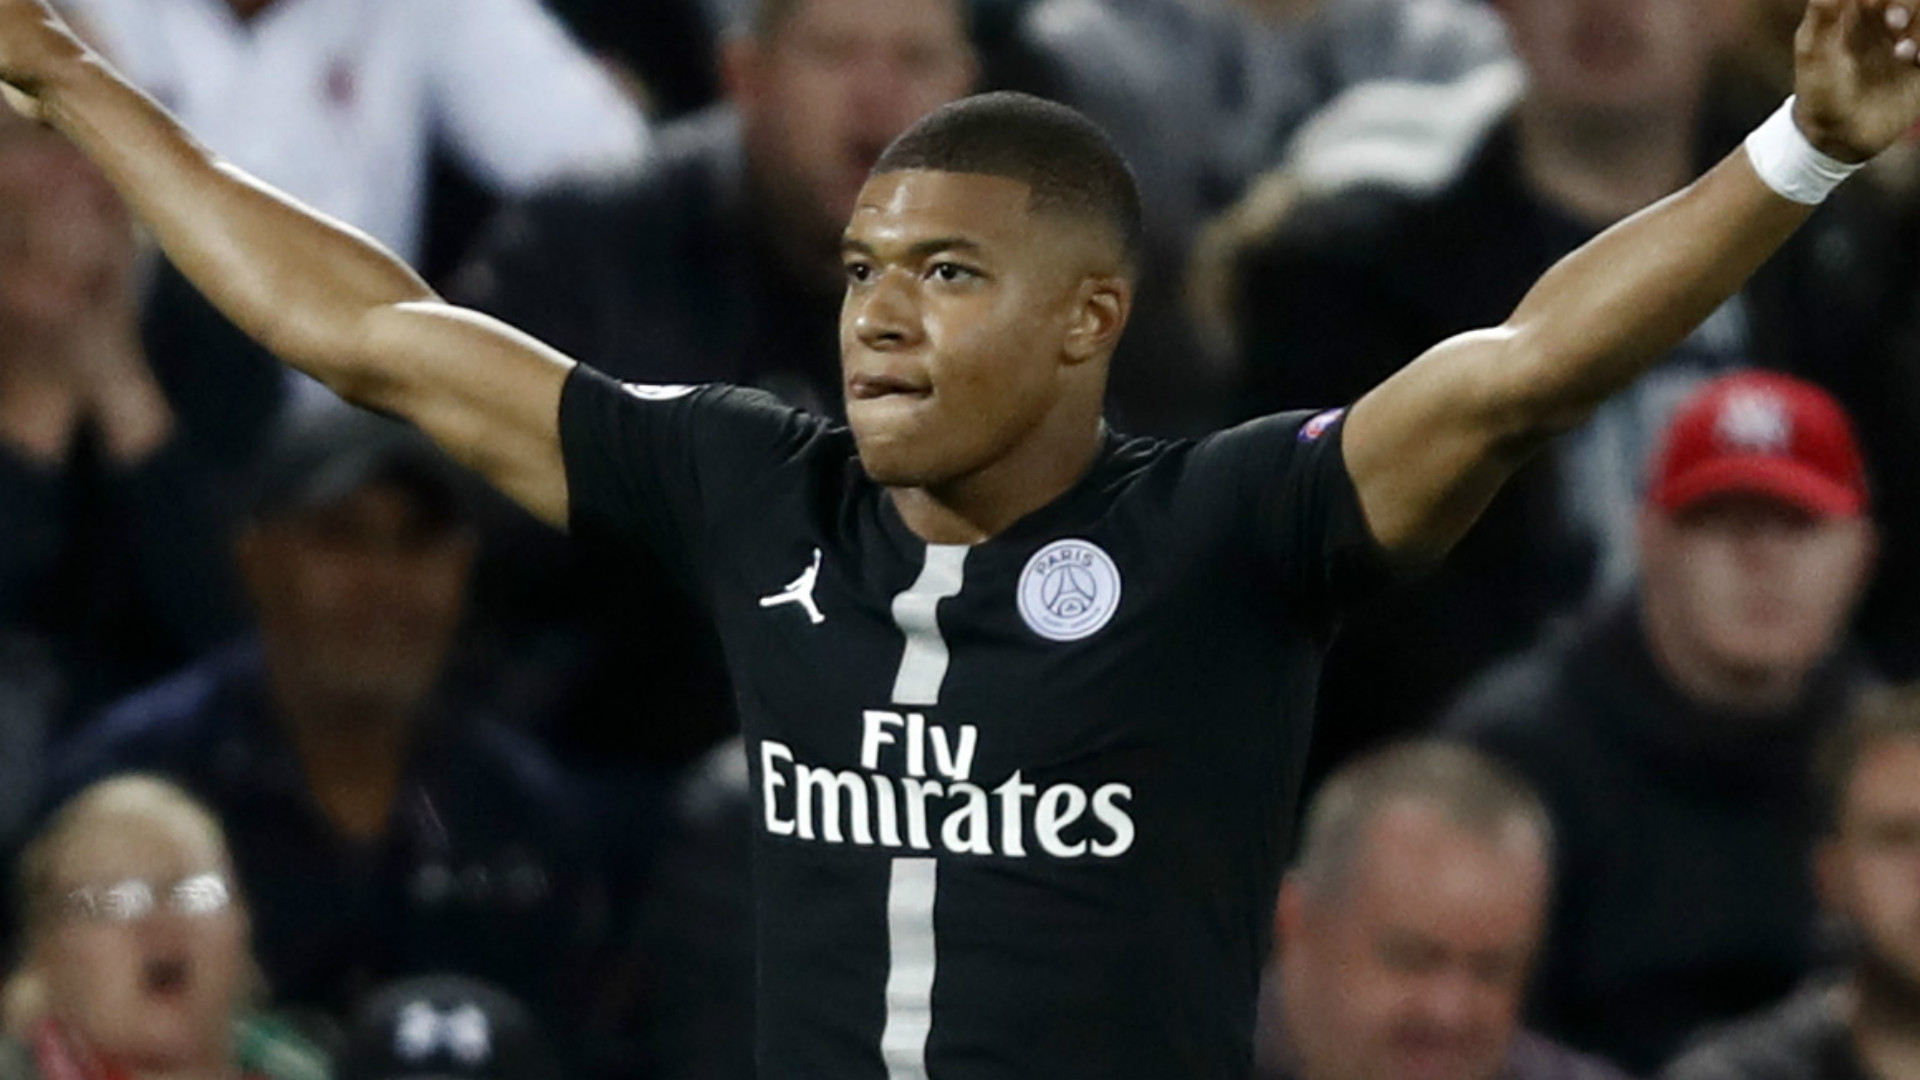 Kylian Mbappe PSG Paris Saint-Germain 2018-19